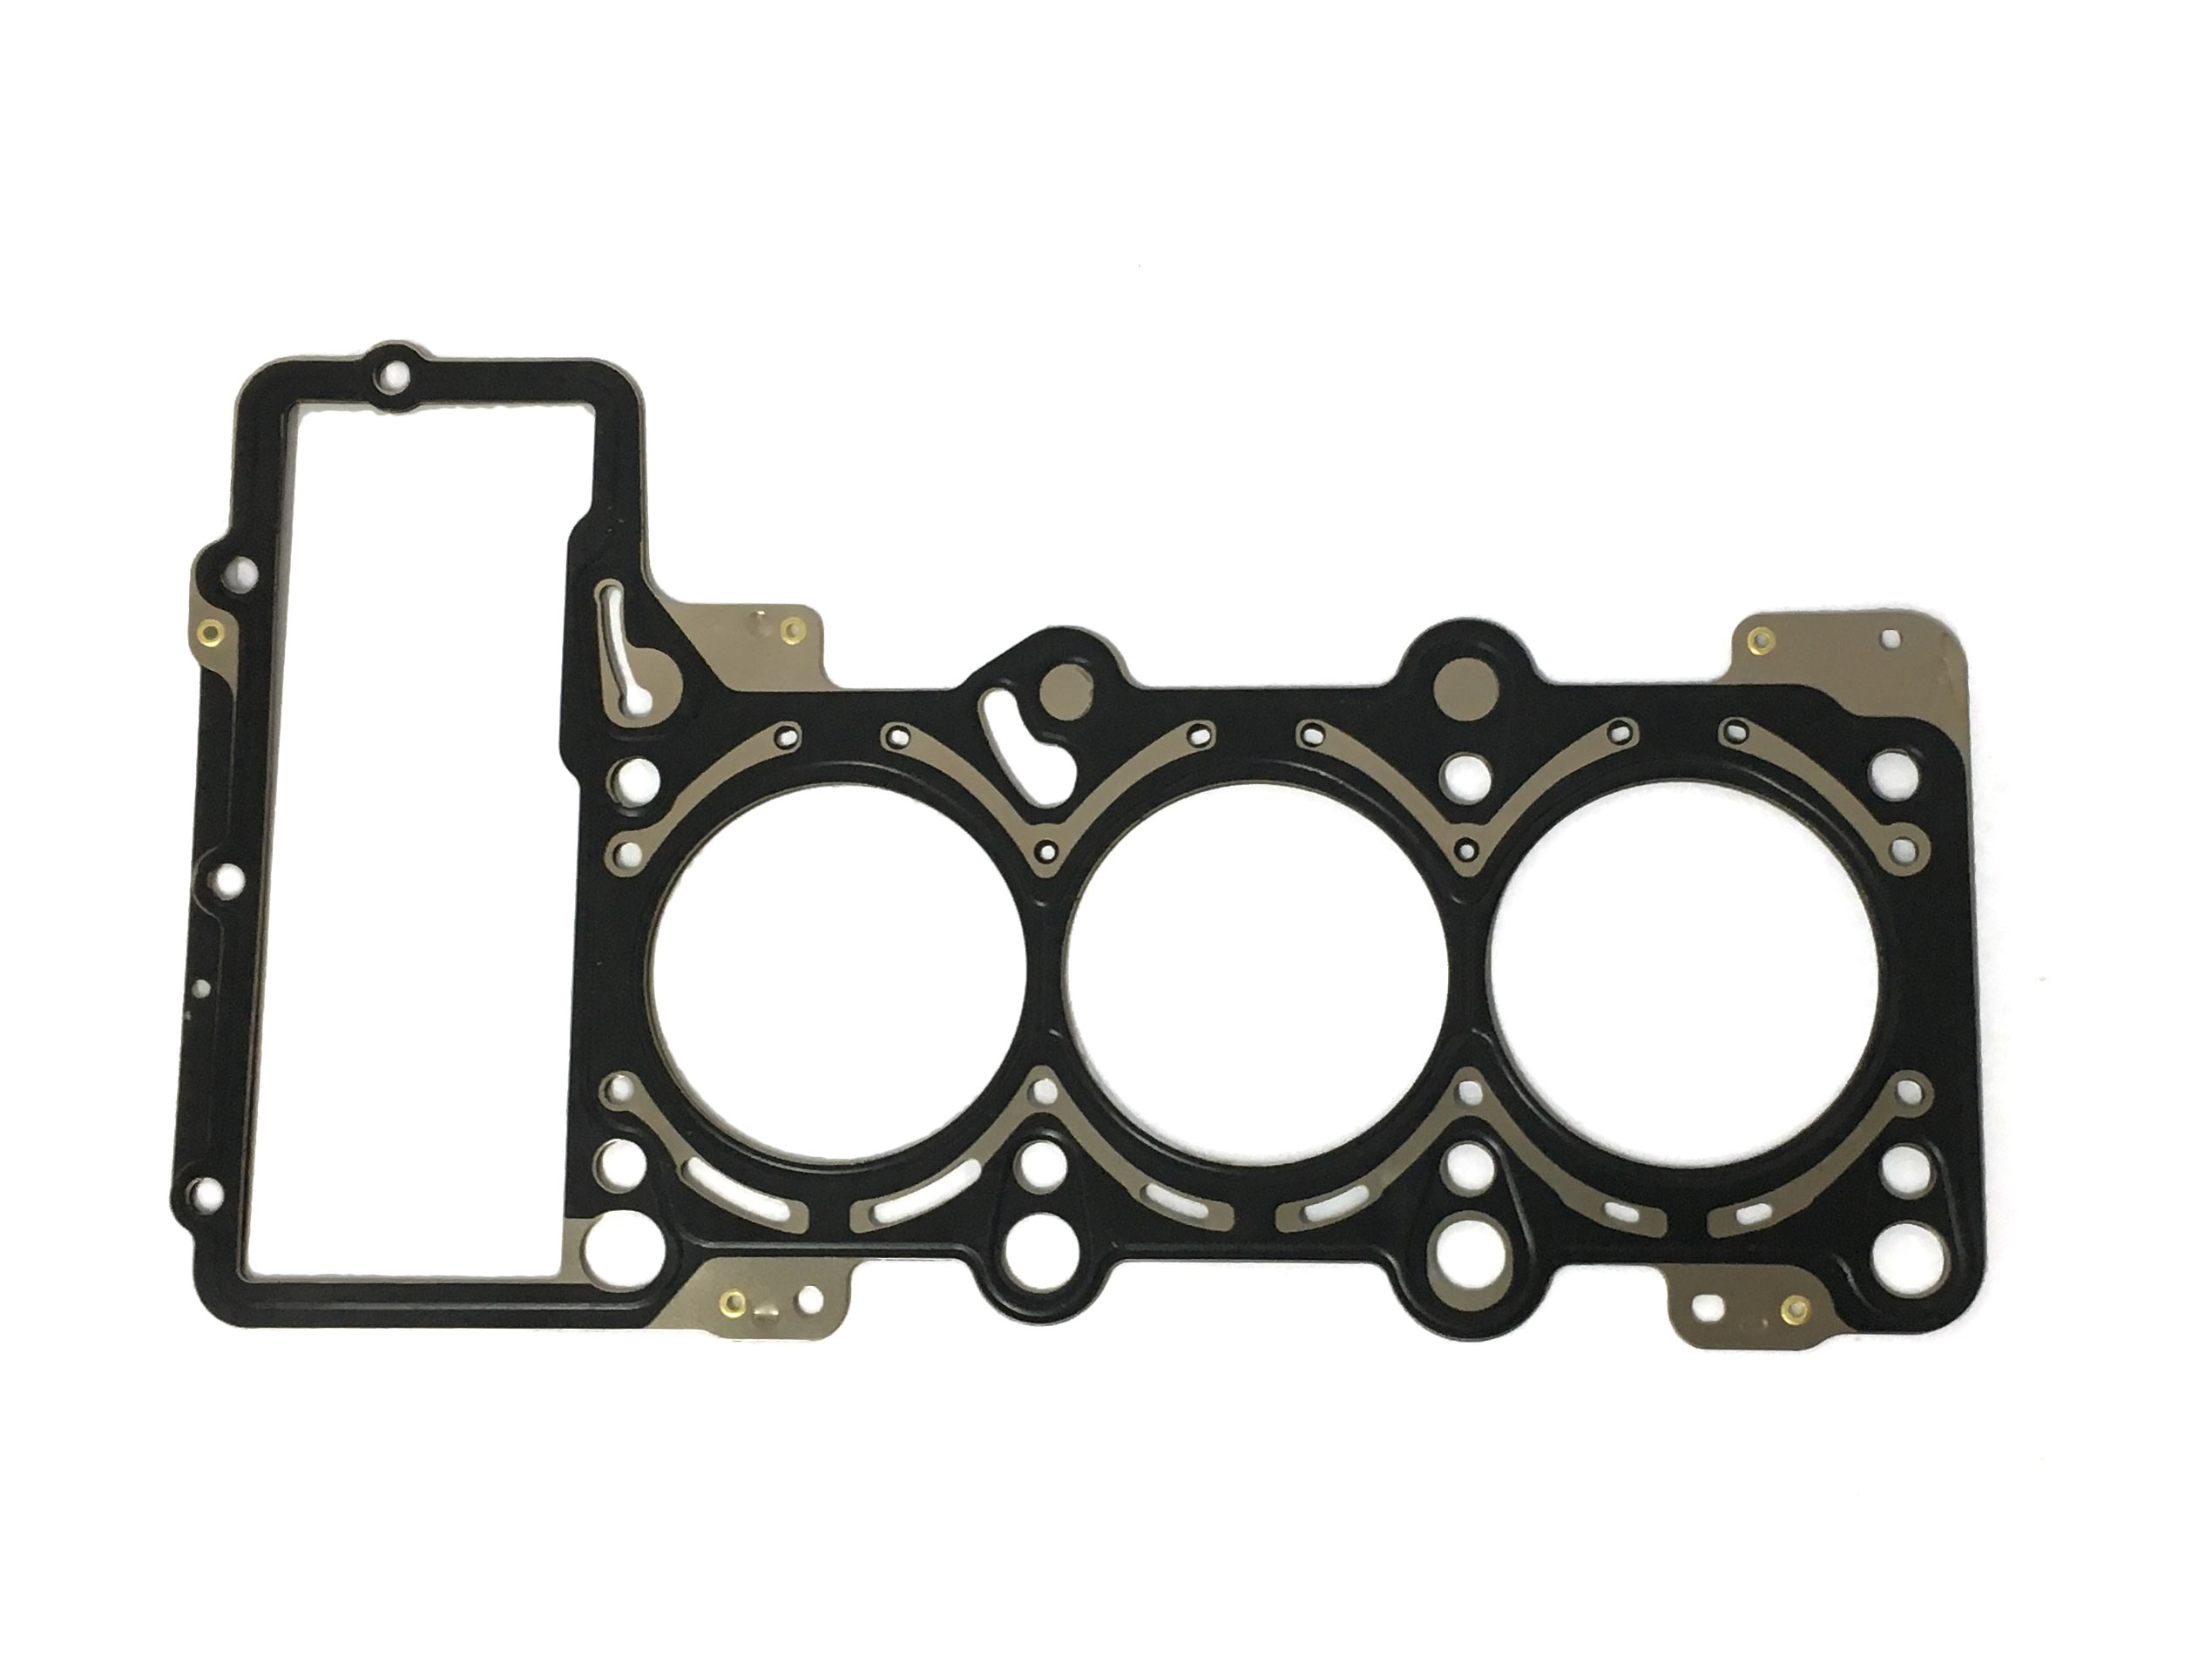 Cylinder head gasket cylinder 1-3 CHG Seal Audi A6 2.4 BDW 06E103148P NEW